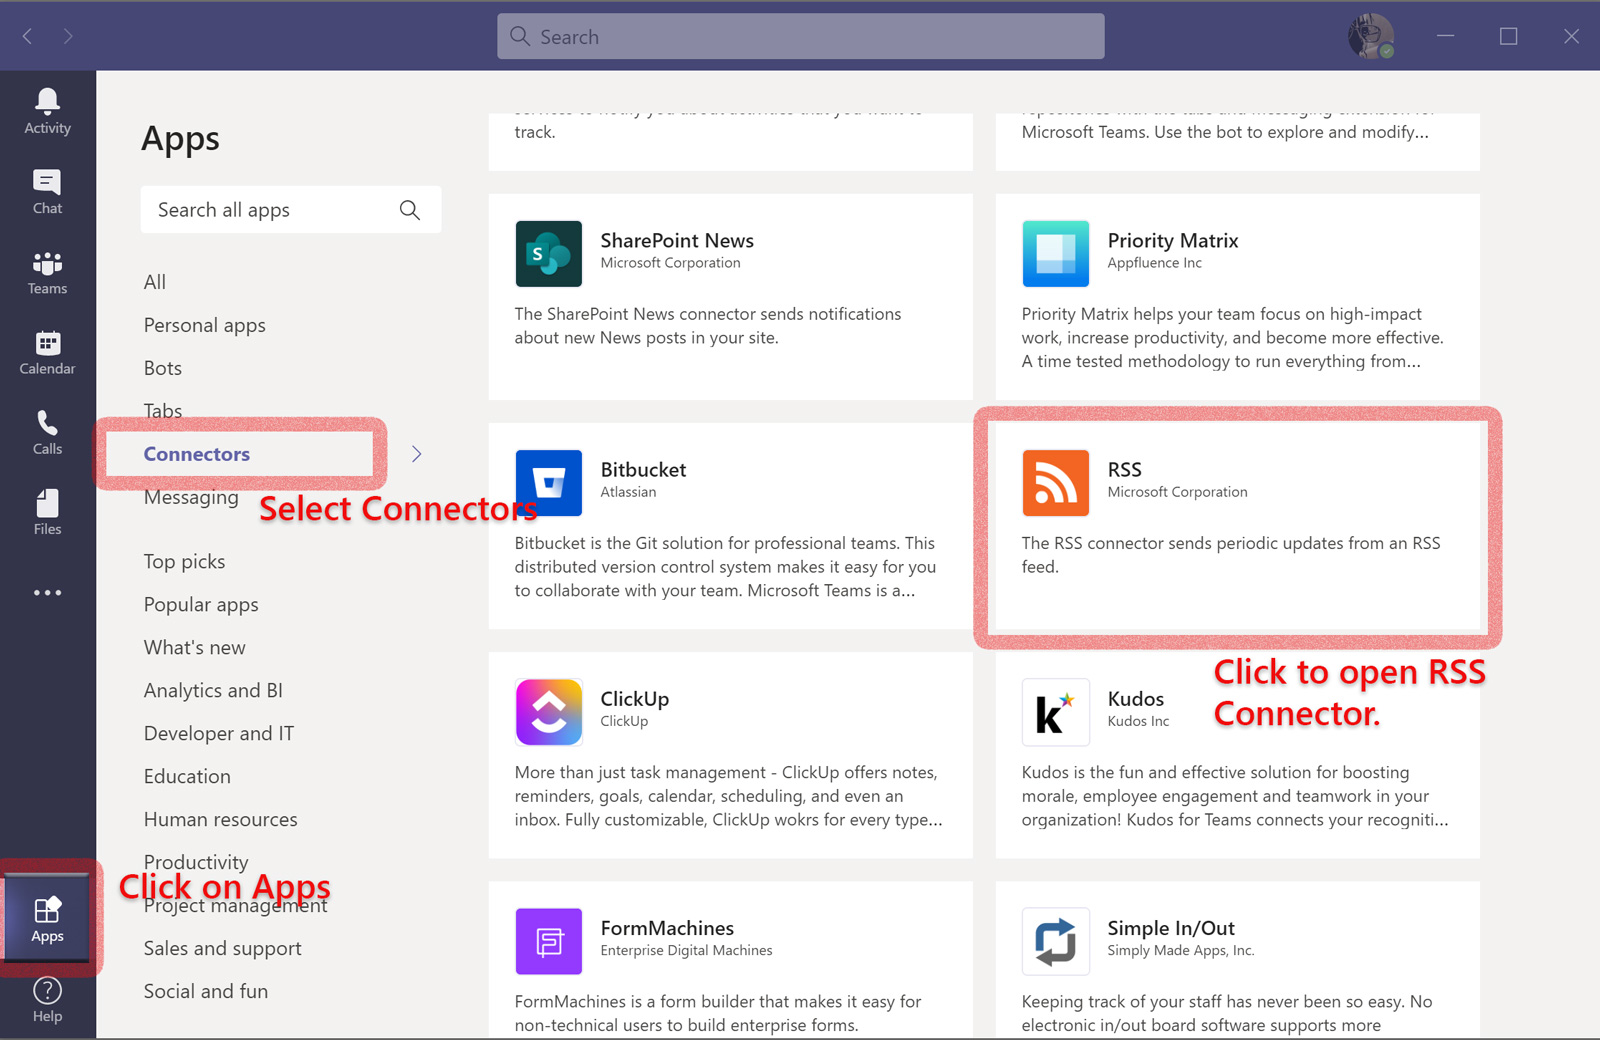 Microsoft Teams Apps section